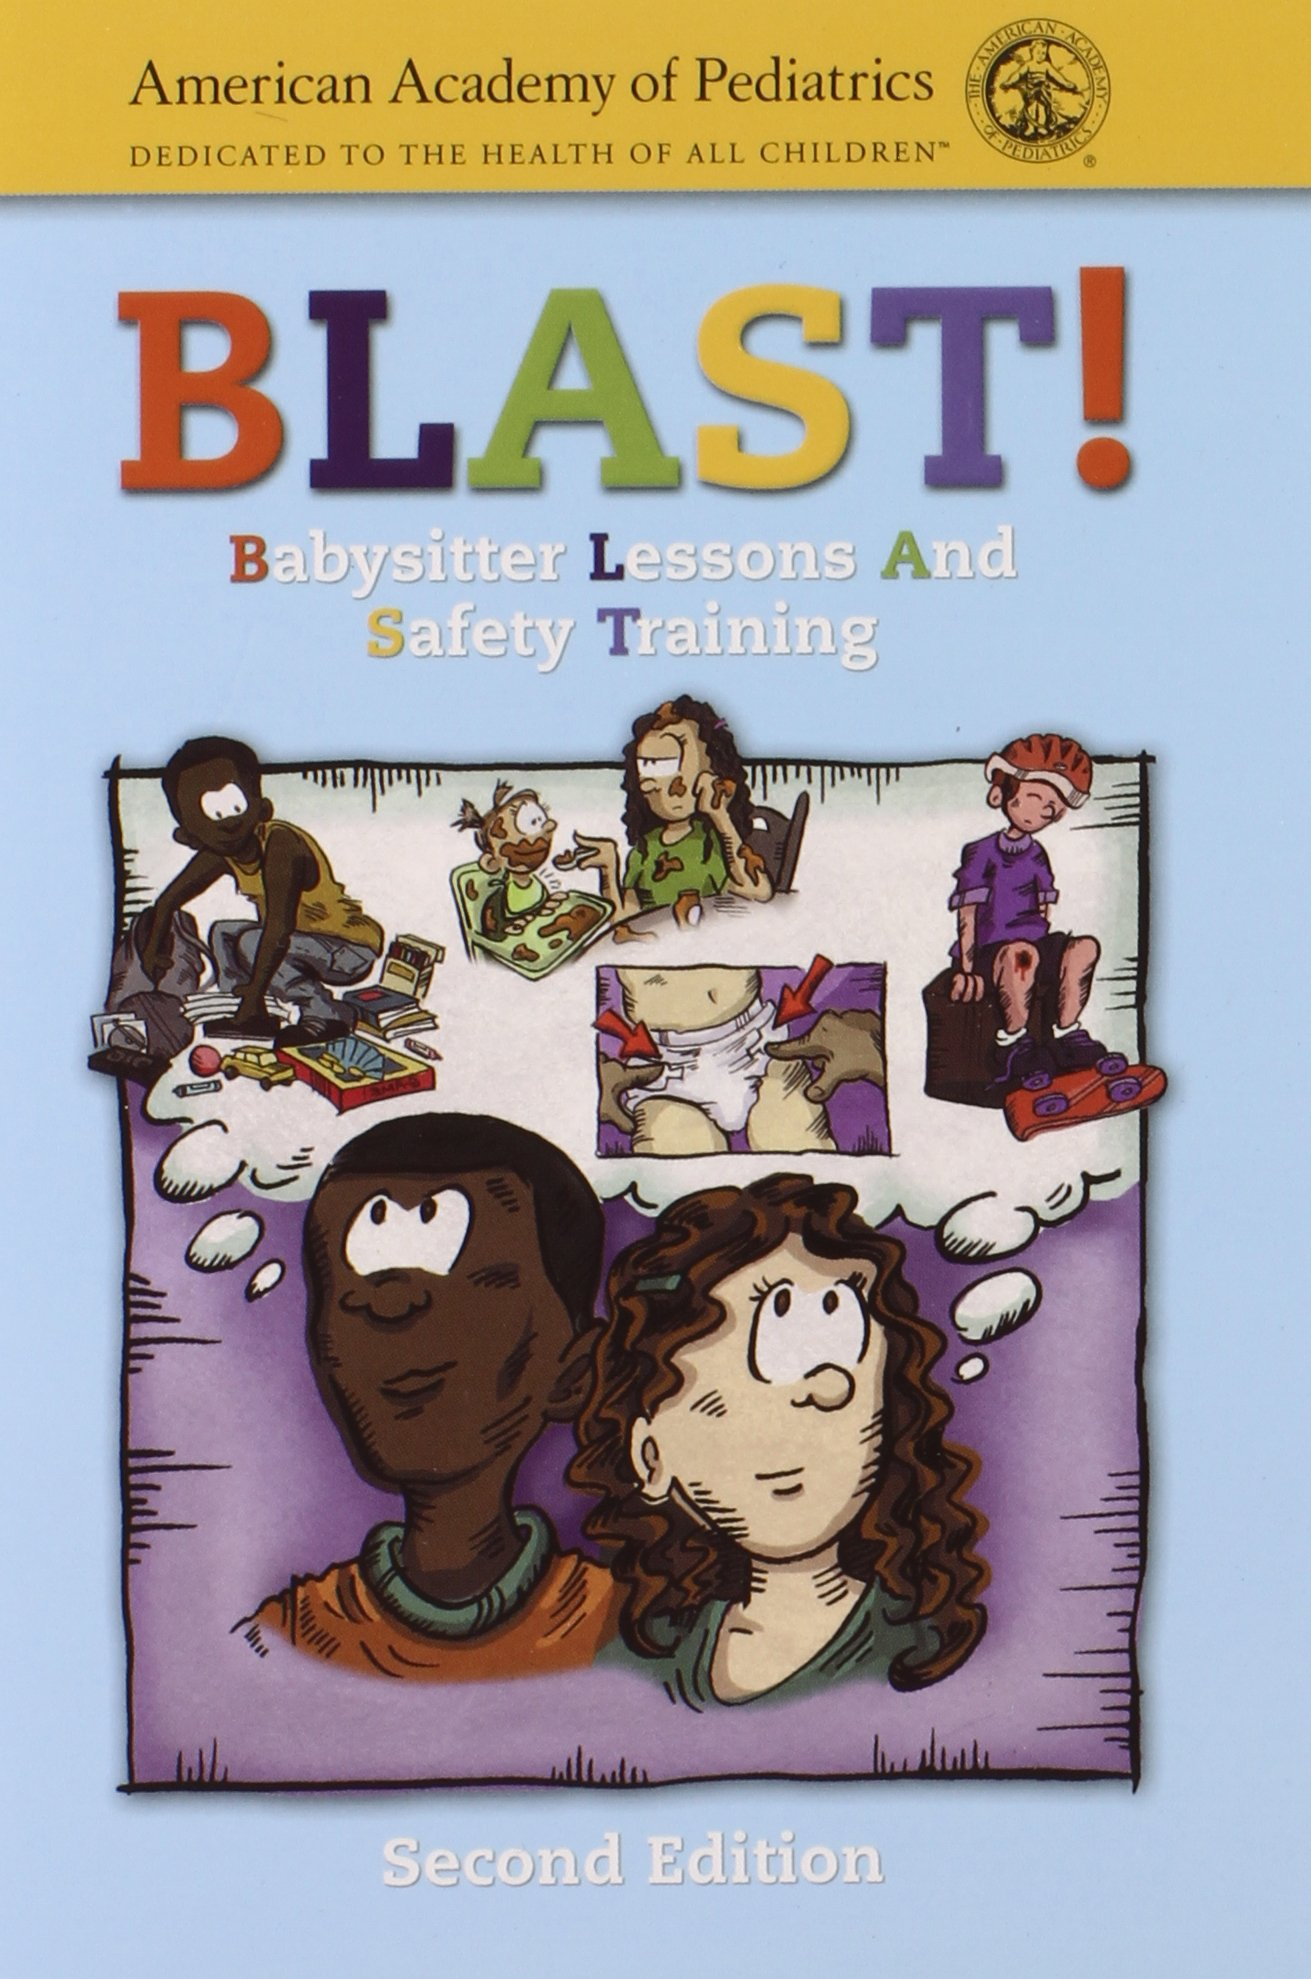 BLAST! (Babysitter Lessons And Safety Training) ebook